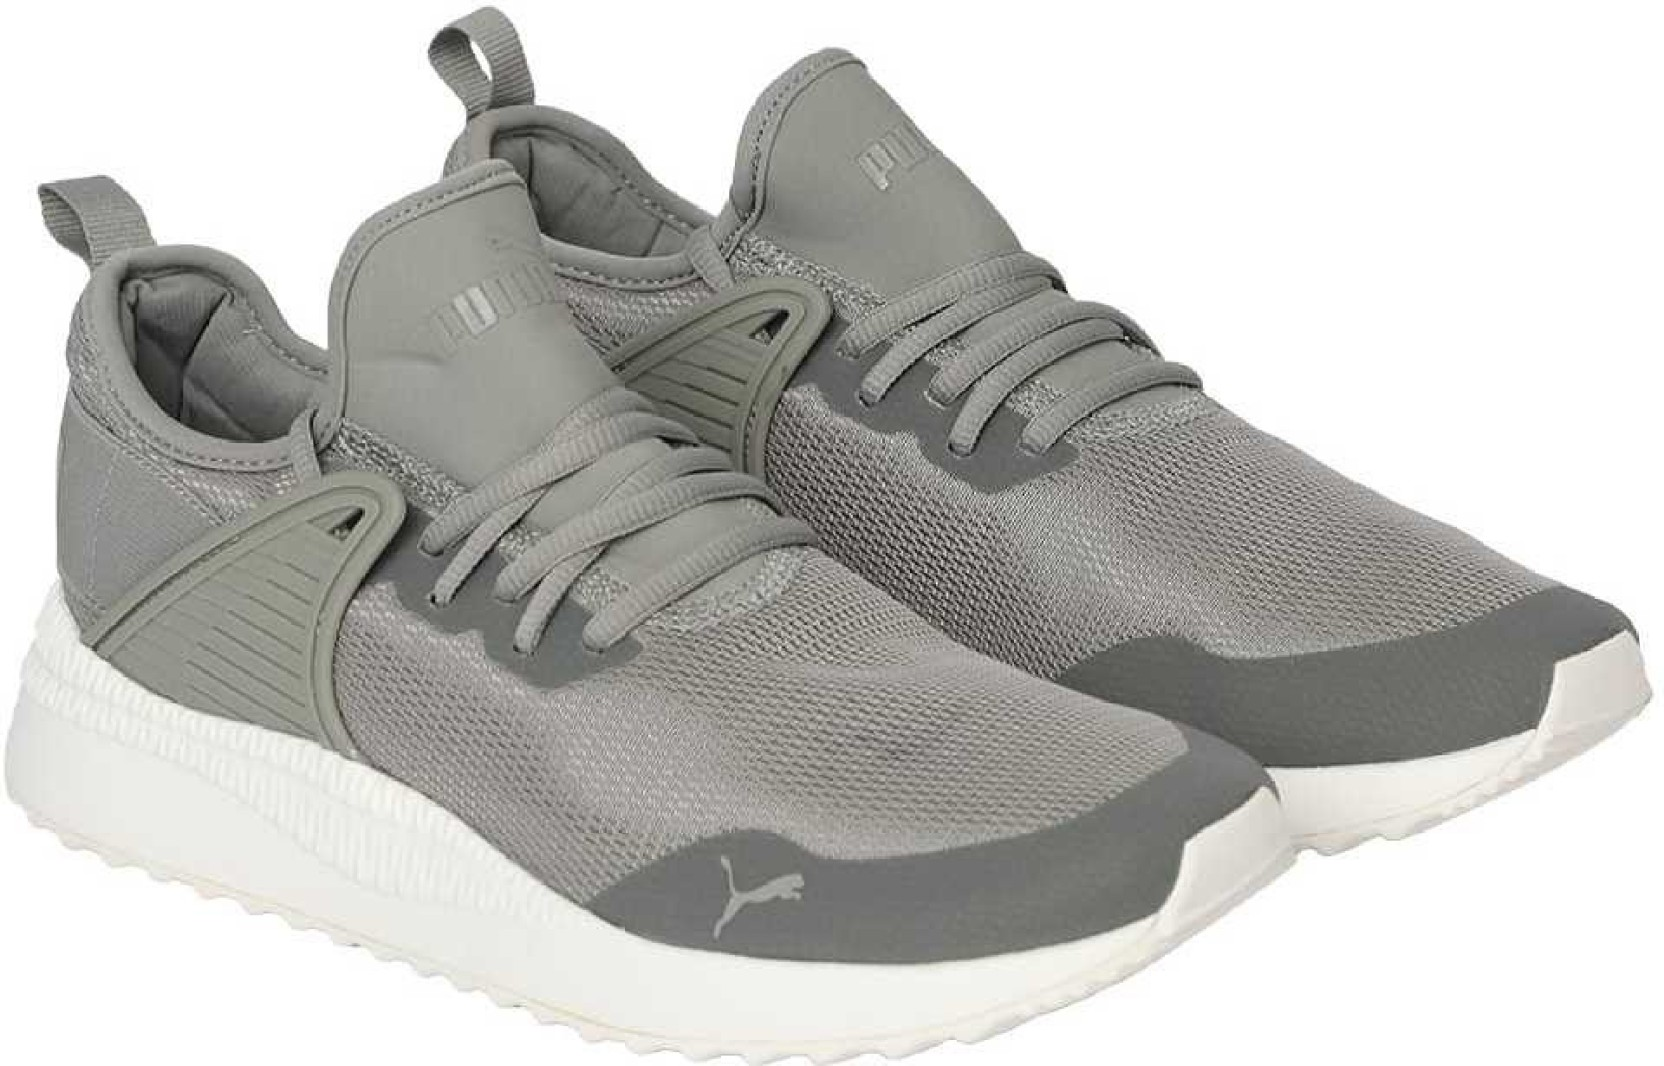 Puma Pacer Next Cage For Women - Buy Puma Pacer Next Cage For Women ... ccc303777